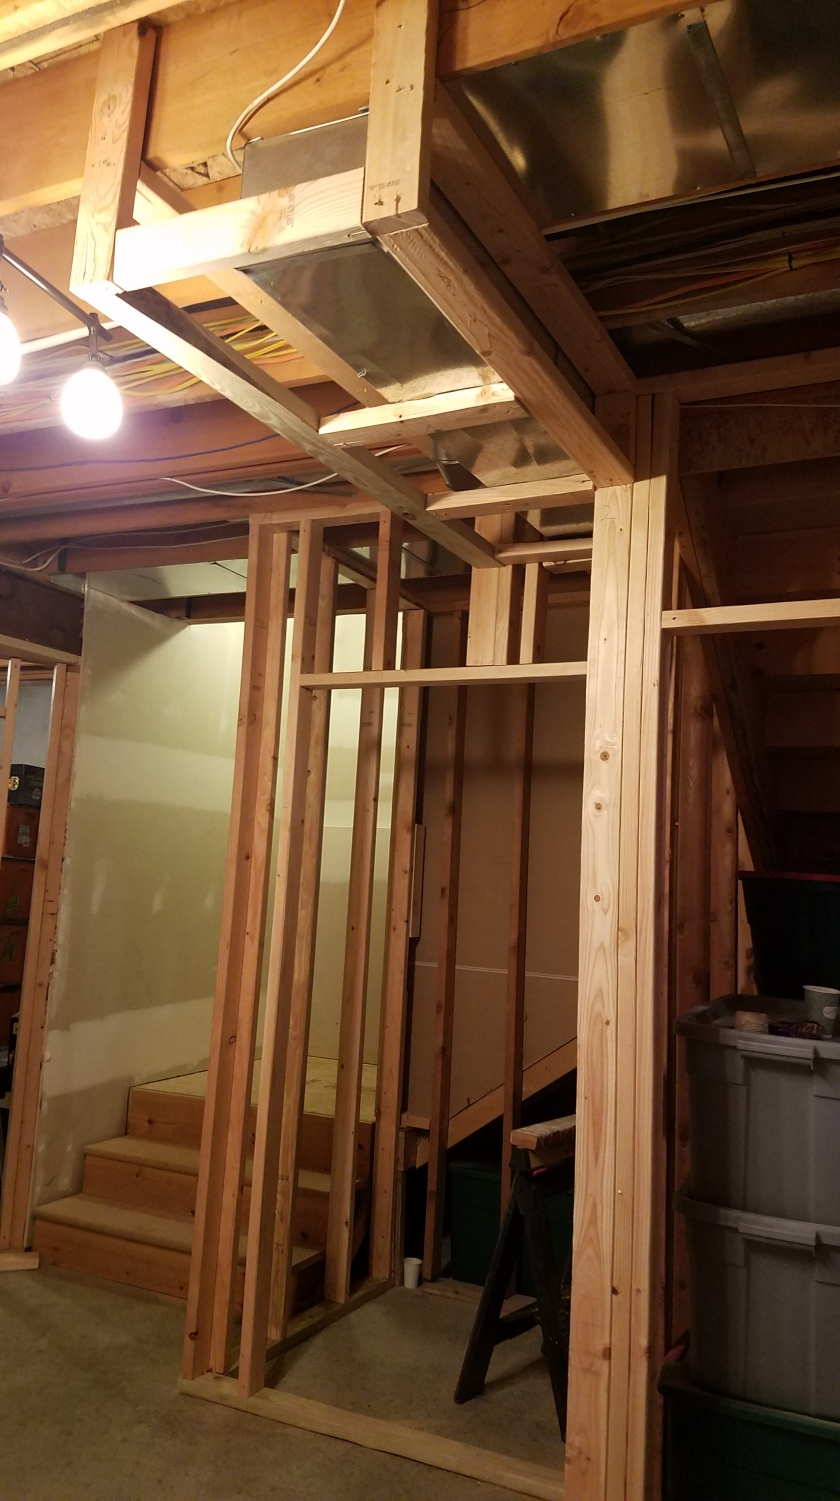 New Closet And Duct Work Framing